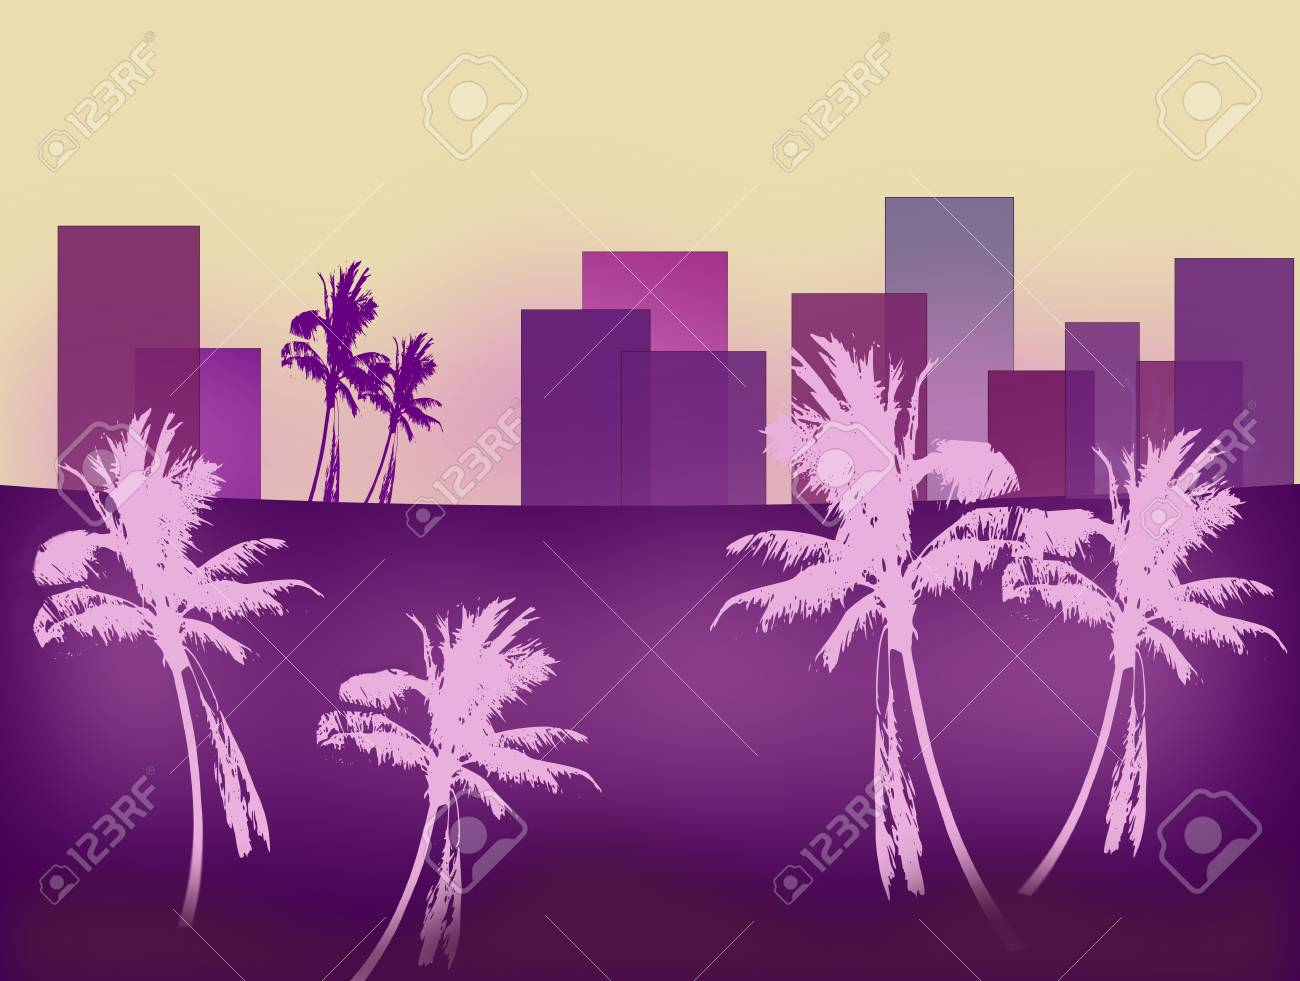 A stylistic image of a skyline   with palm trees in the forground. Stock Photo - 12305955